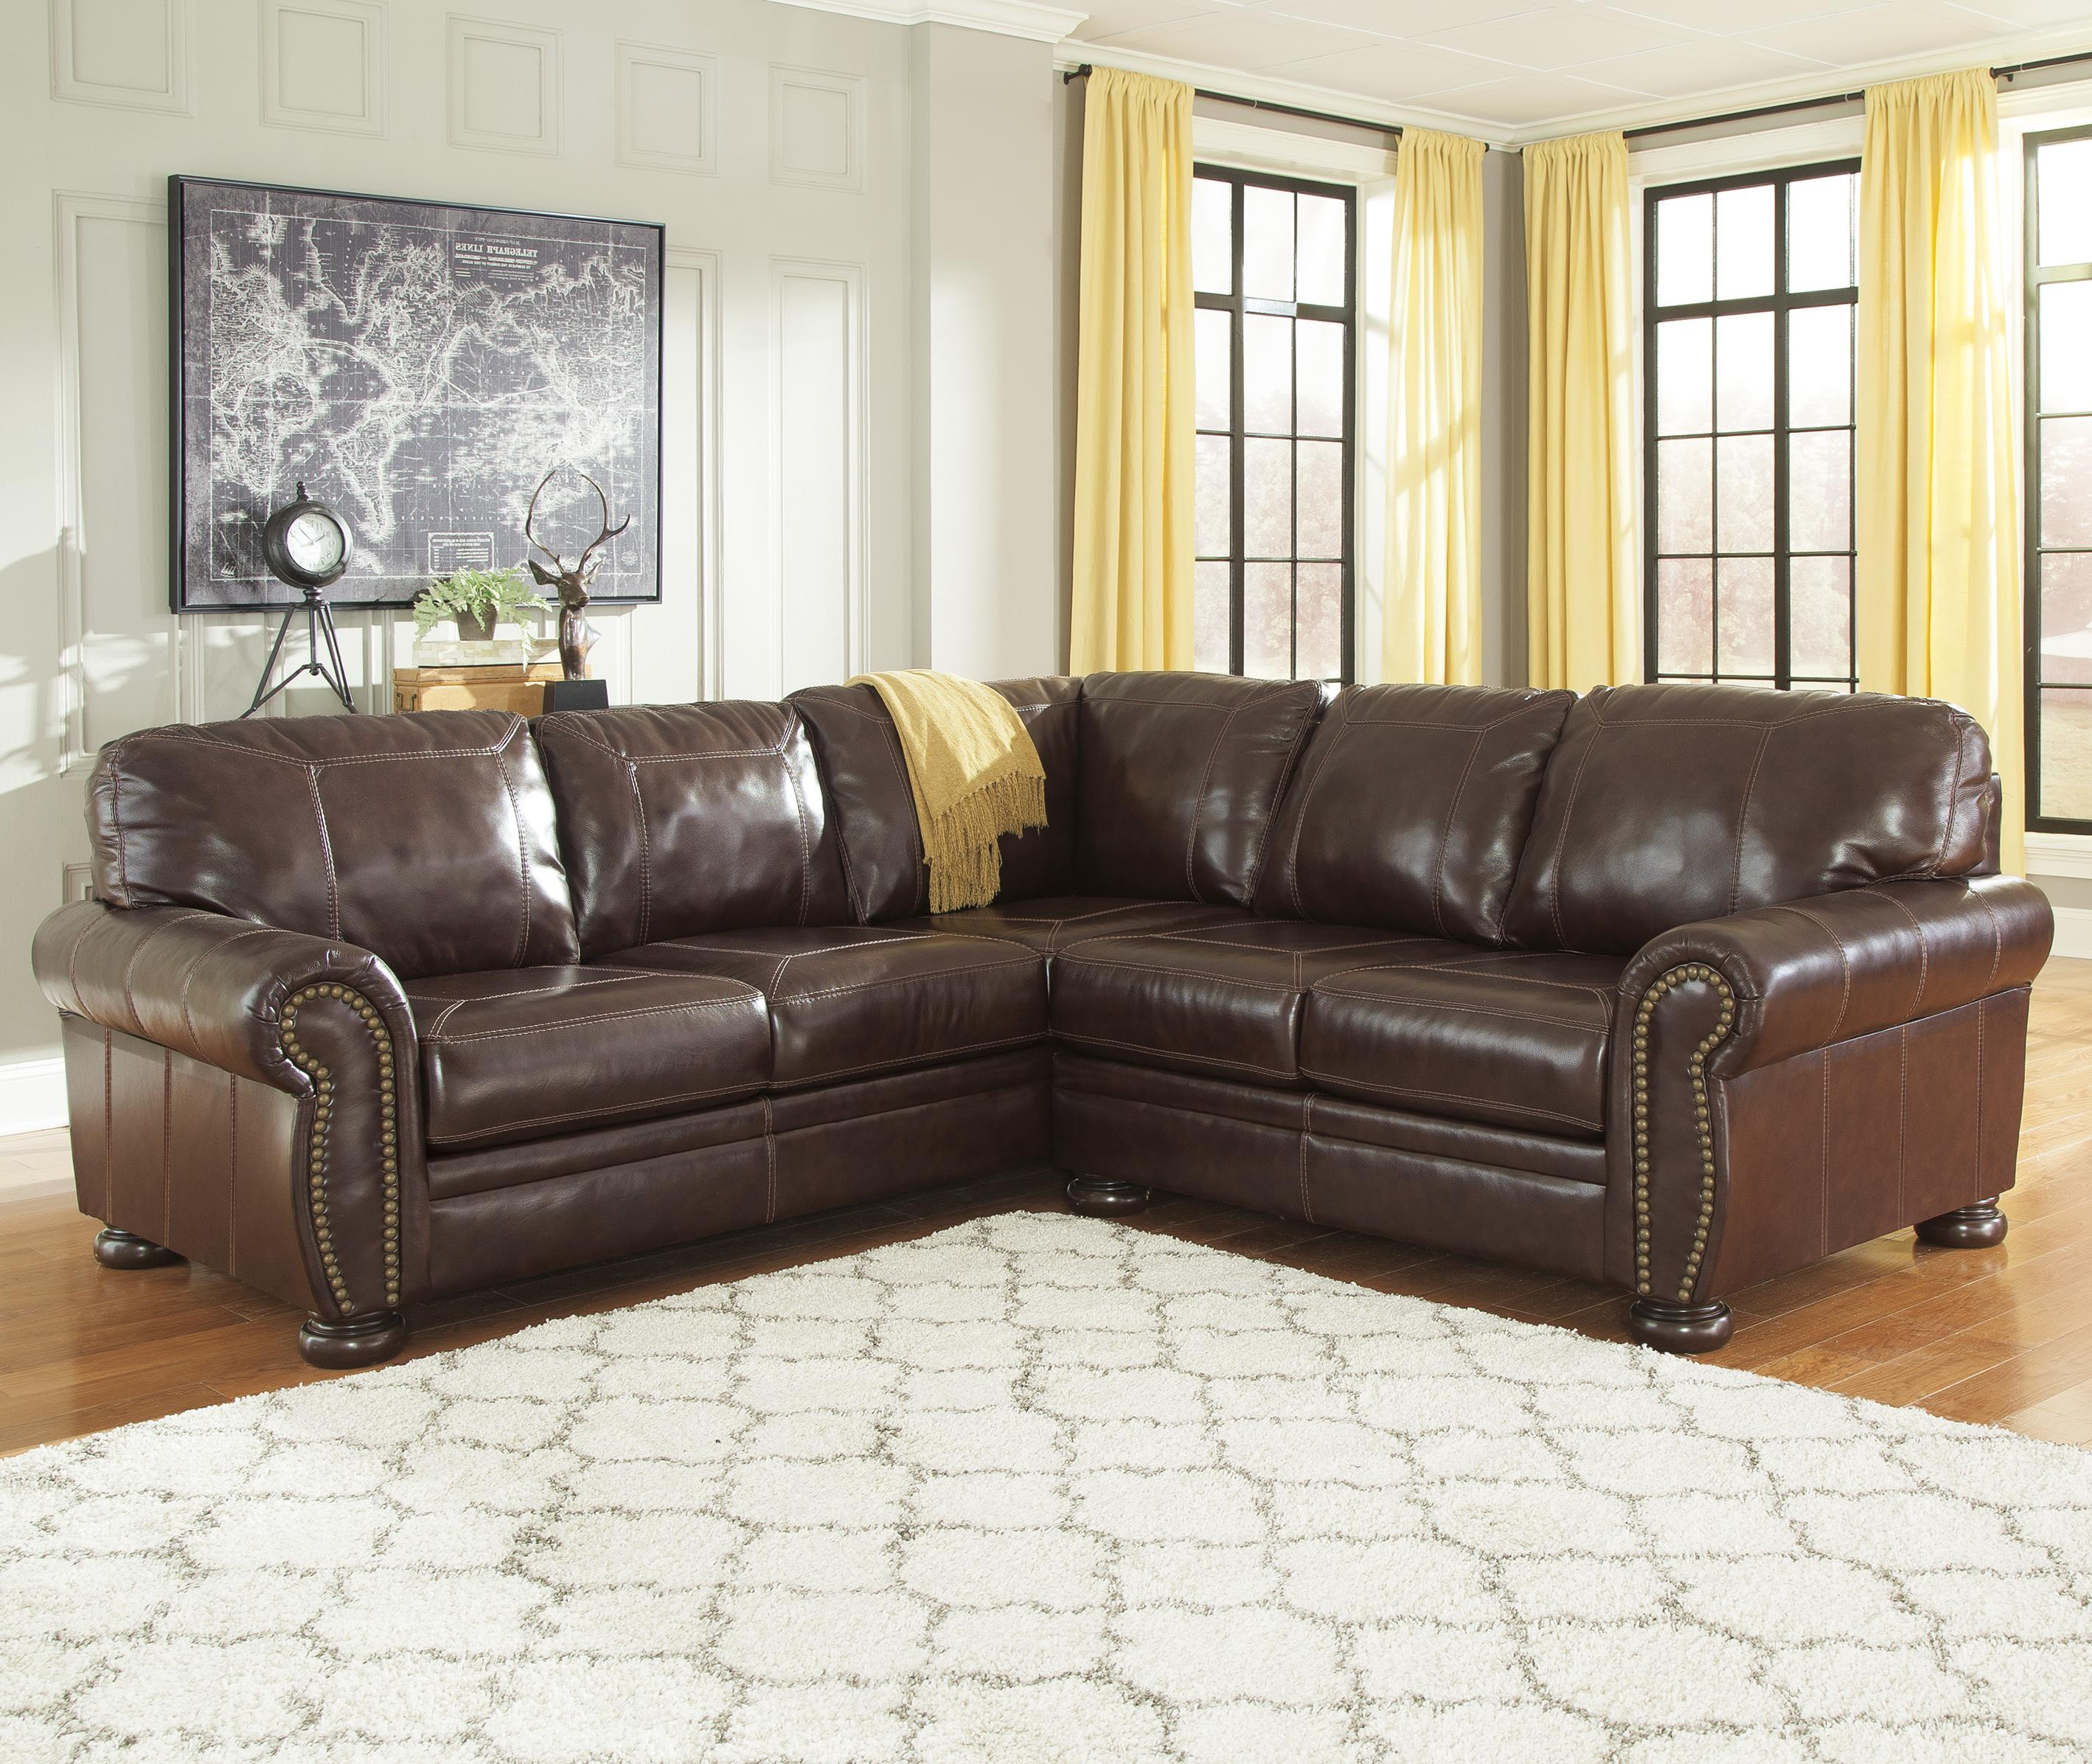 Beau 2 Piece Leather Match Sectional With Rolled Arms, Nailhead Trim, U0026 Bun Feet